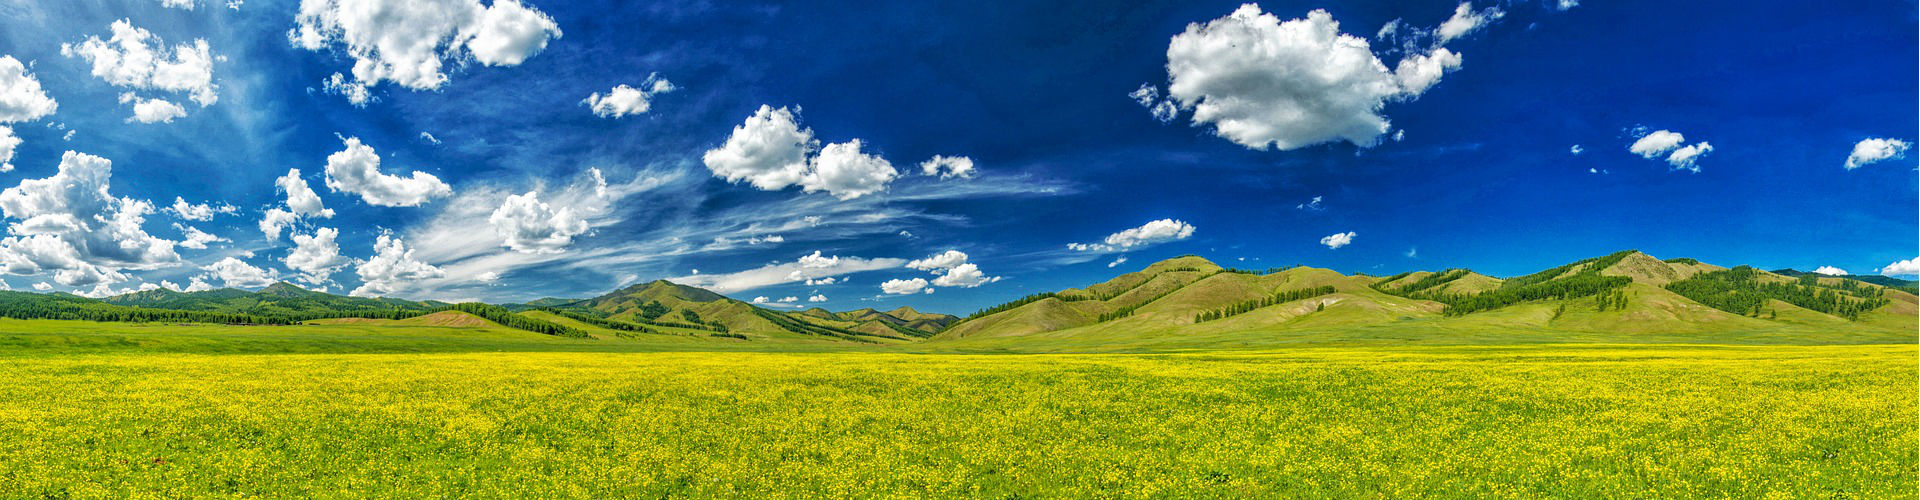 the-valley-of-flowers-2386198_1920_ok